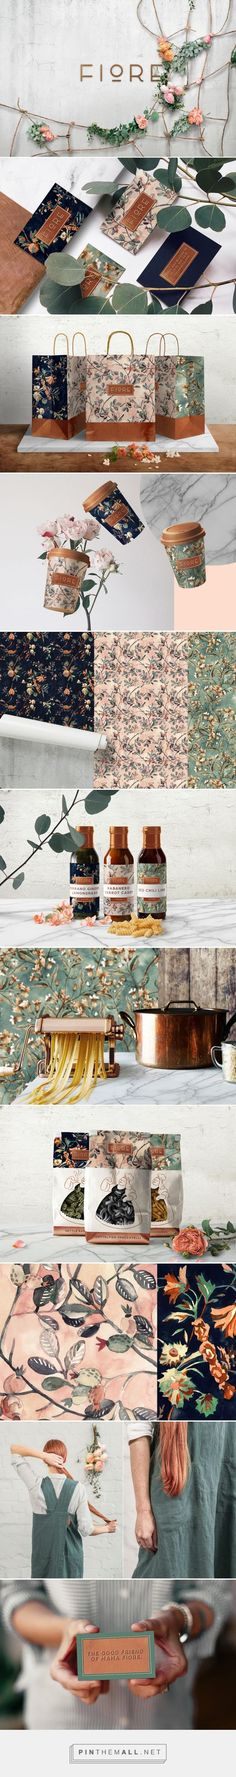 FIORE Italian Restaurant Branding by Noname Branding | Fivestar Branding Agency – Design and Branding Agency & Curated Inspiration Gallery